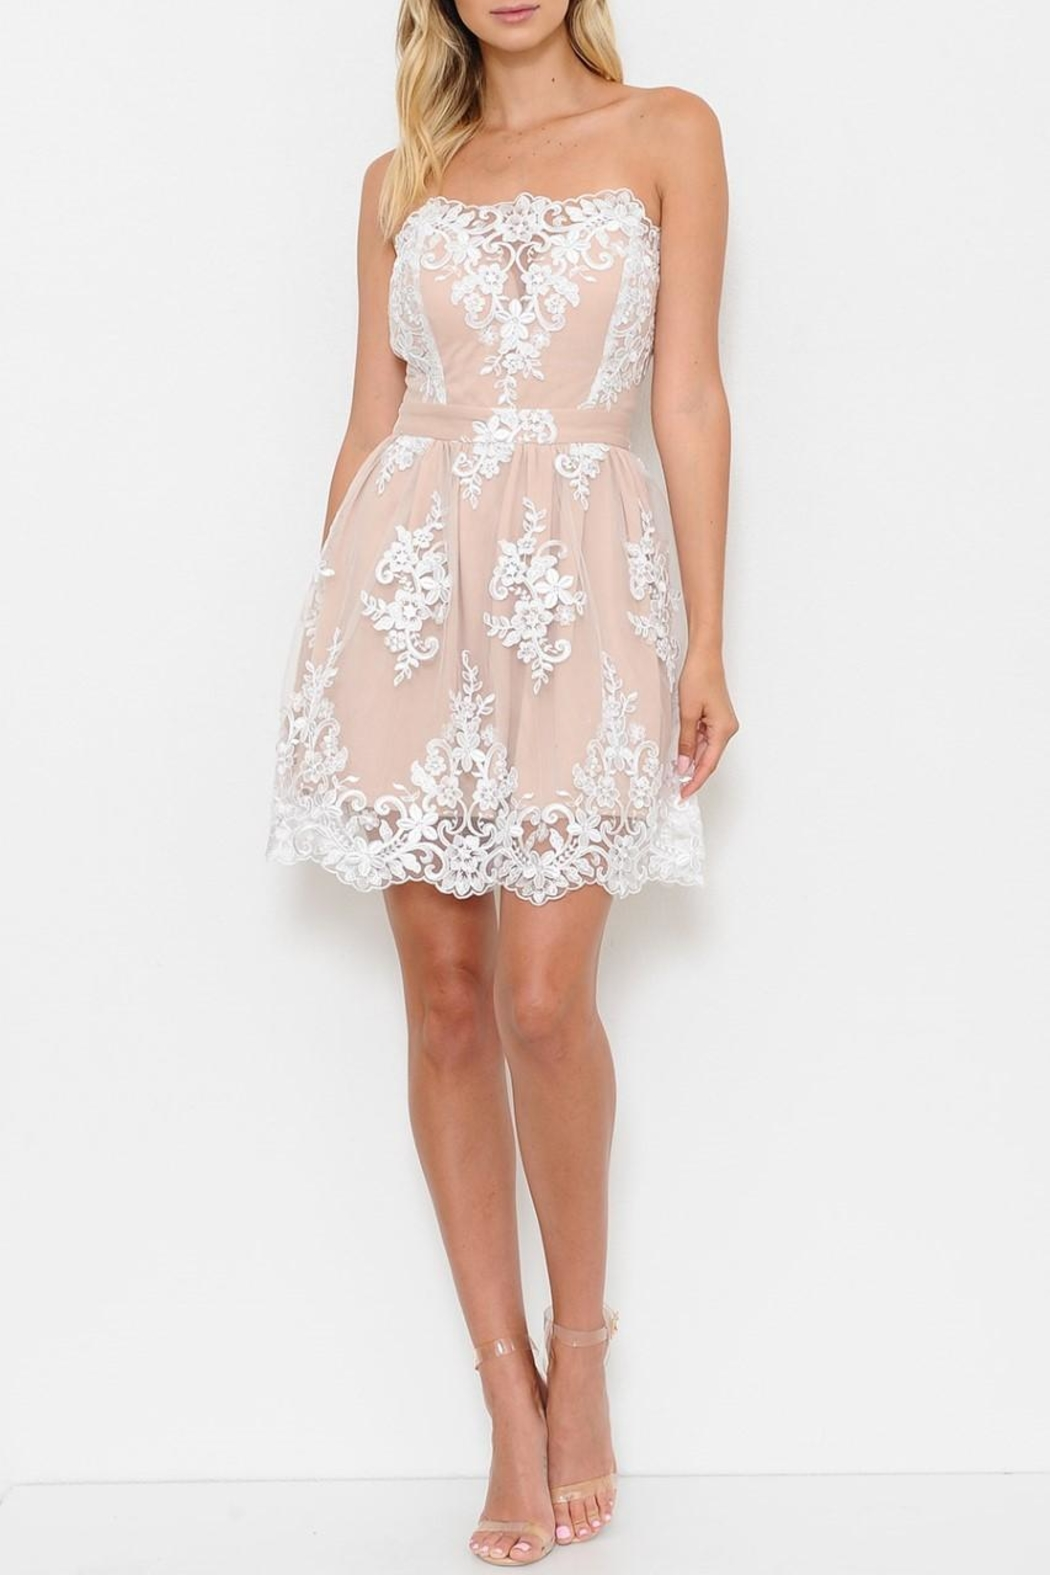 L'atiste White Lace Dress - Front Cropped Image